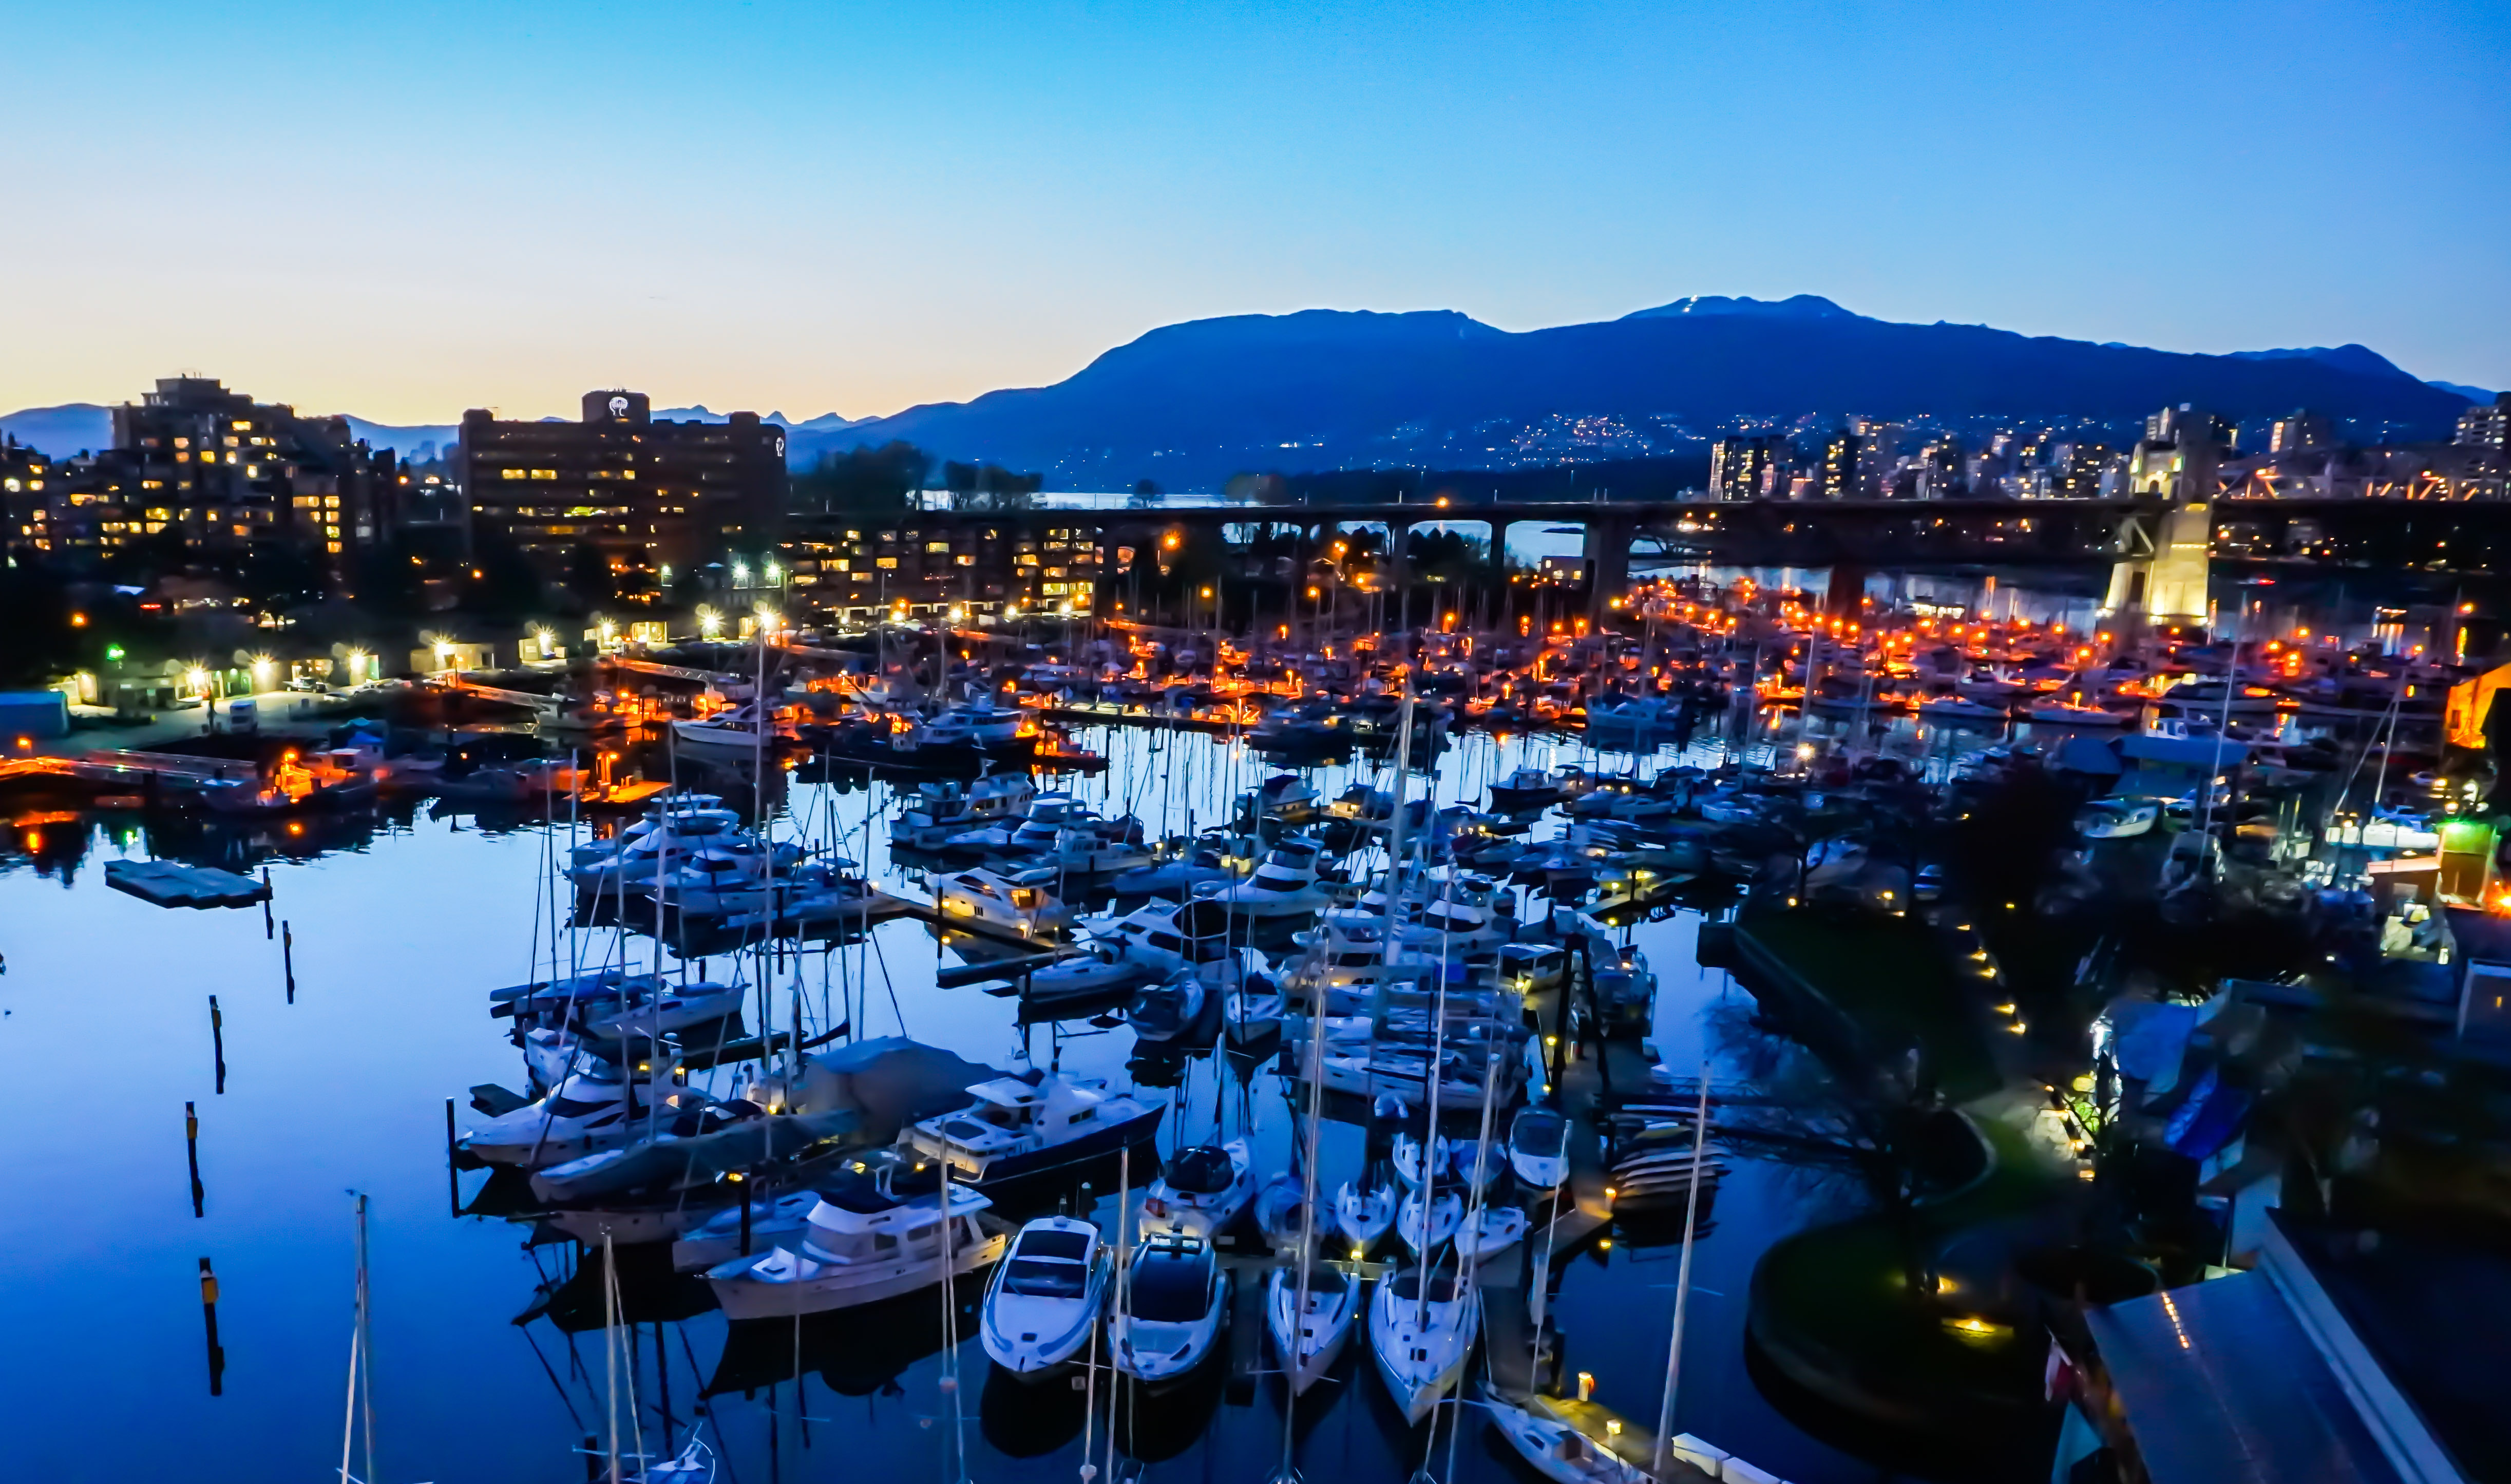 File:Vancouver-Canada 03.jpg - Wikimedia Commons